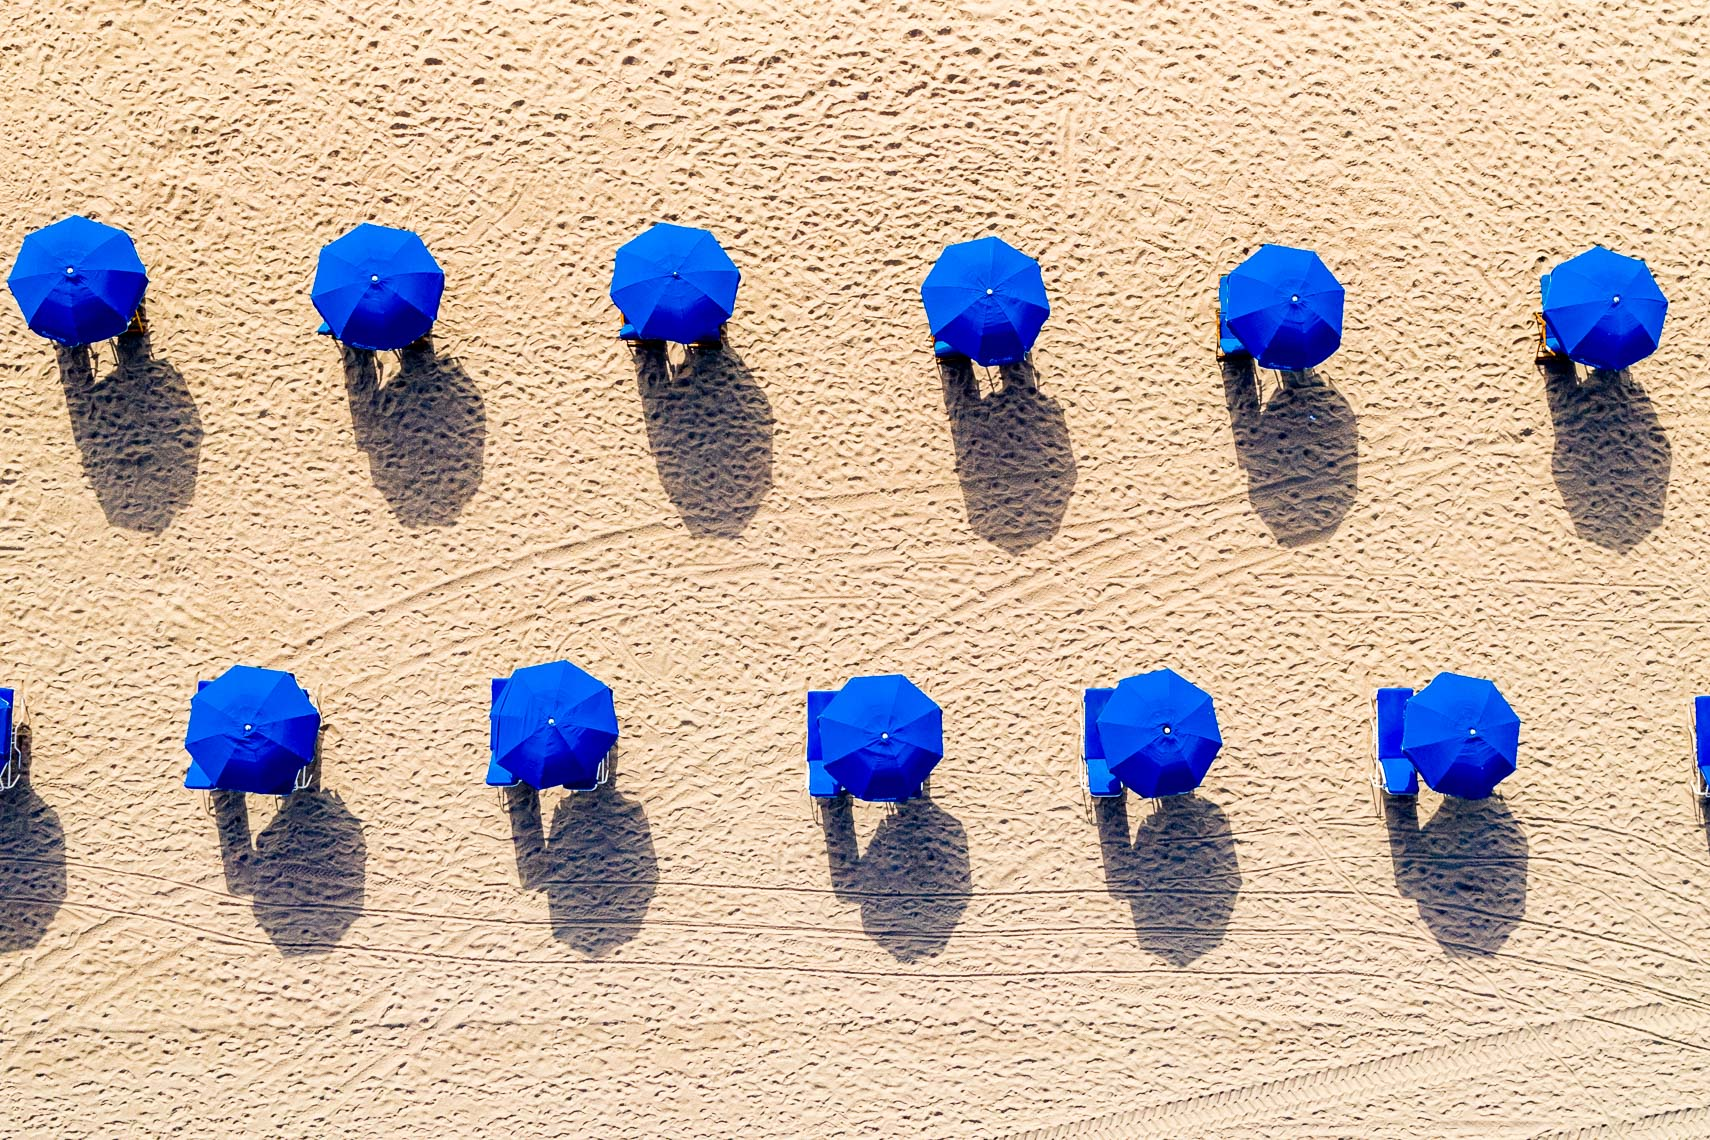 Blue Umbrellas On The Beach